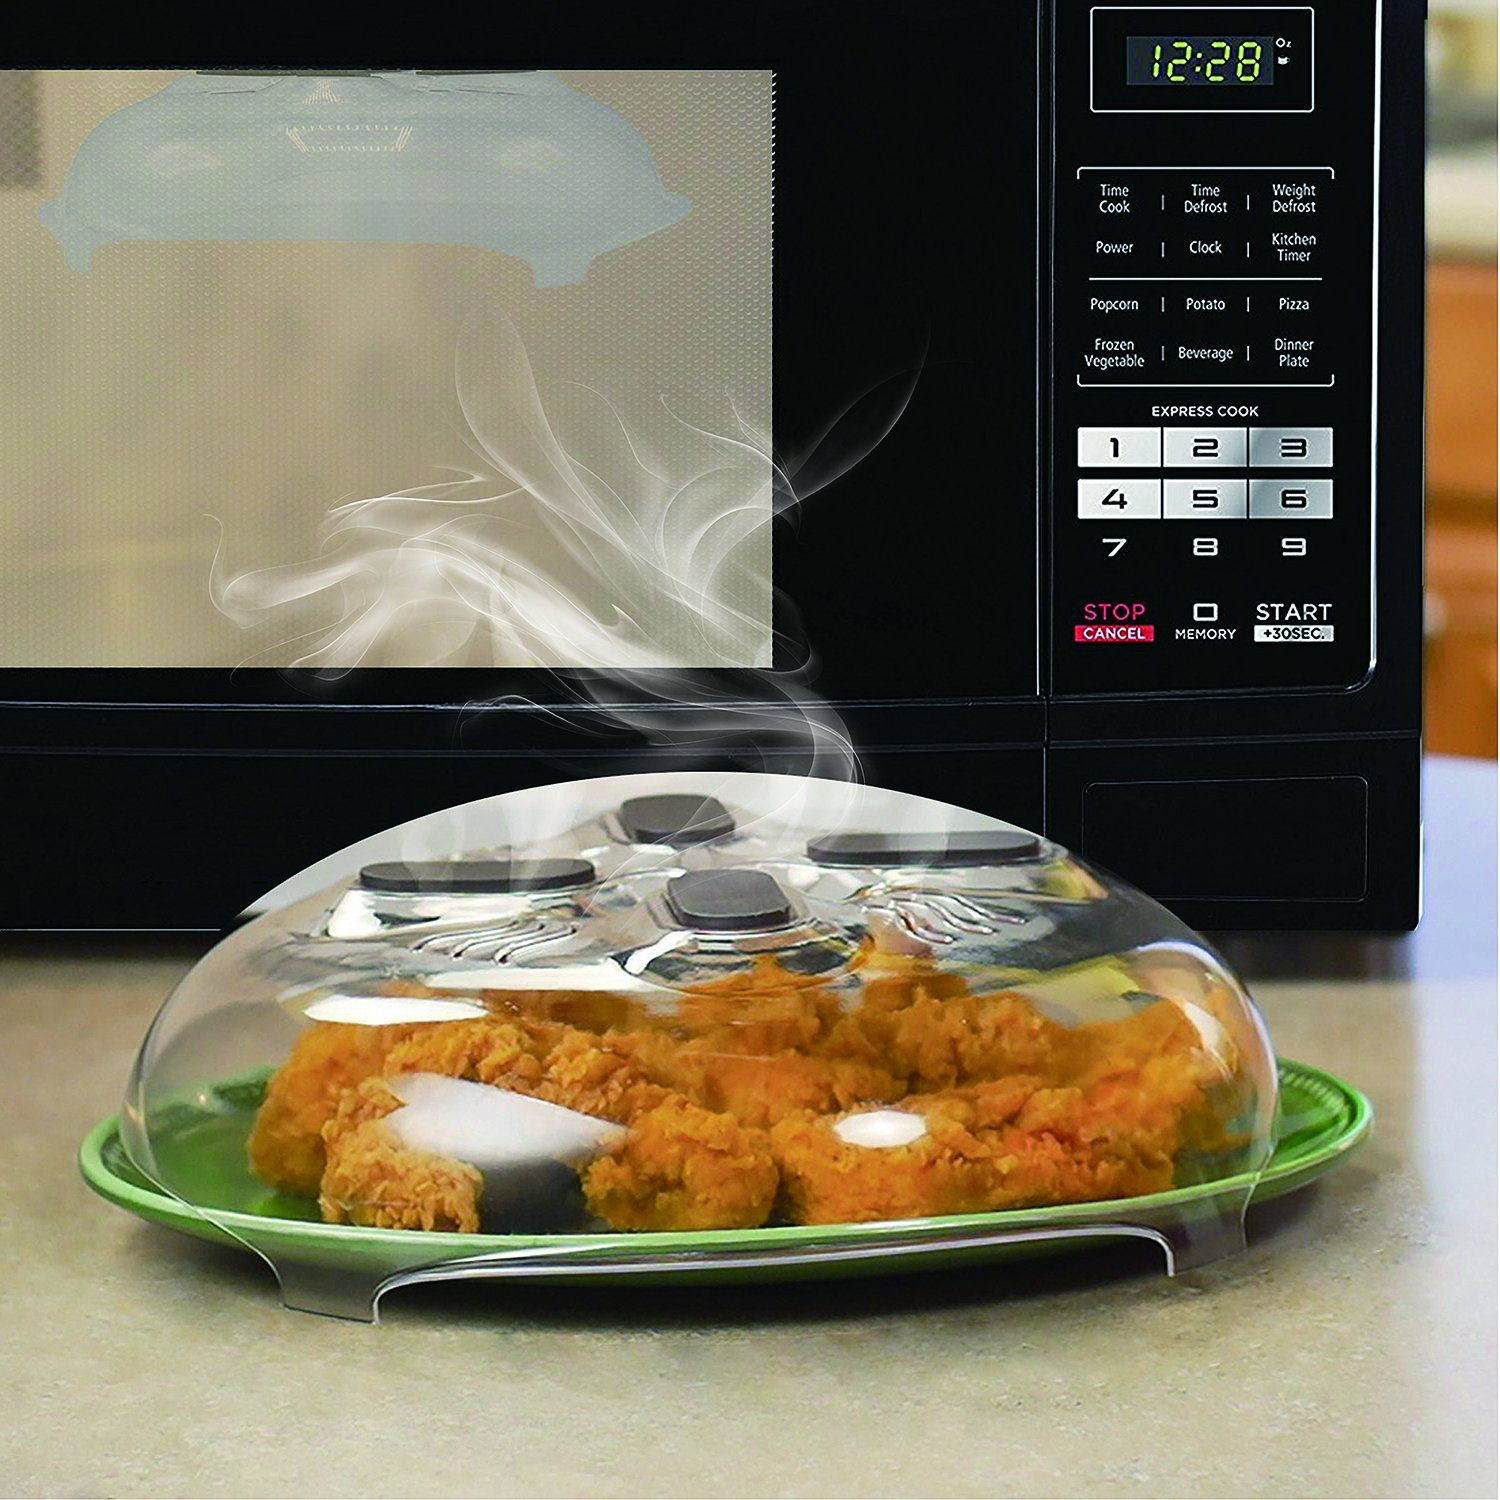 Microwave Hover Anti-Sputtering Cover, New Food Splatter Guard Microwave Splatter Lid with Steam Vents | 11.5 – Inch